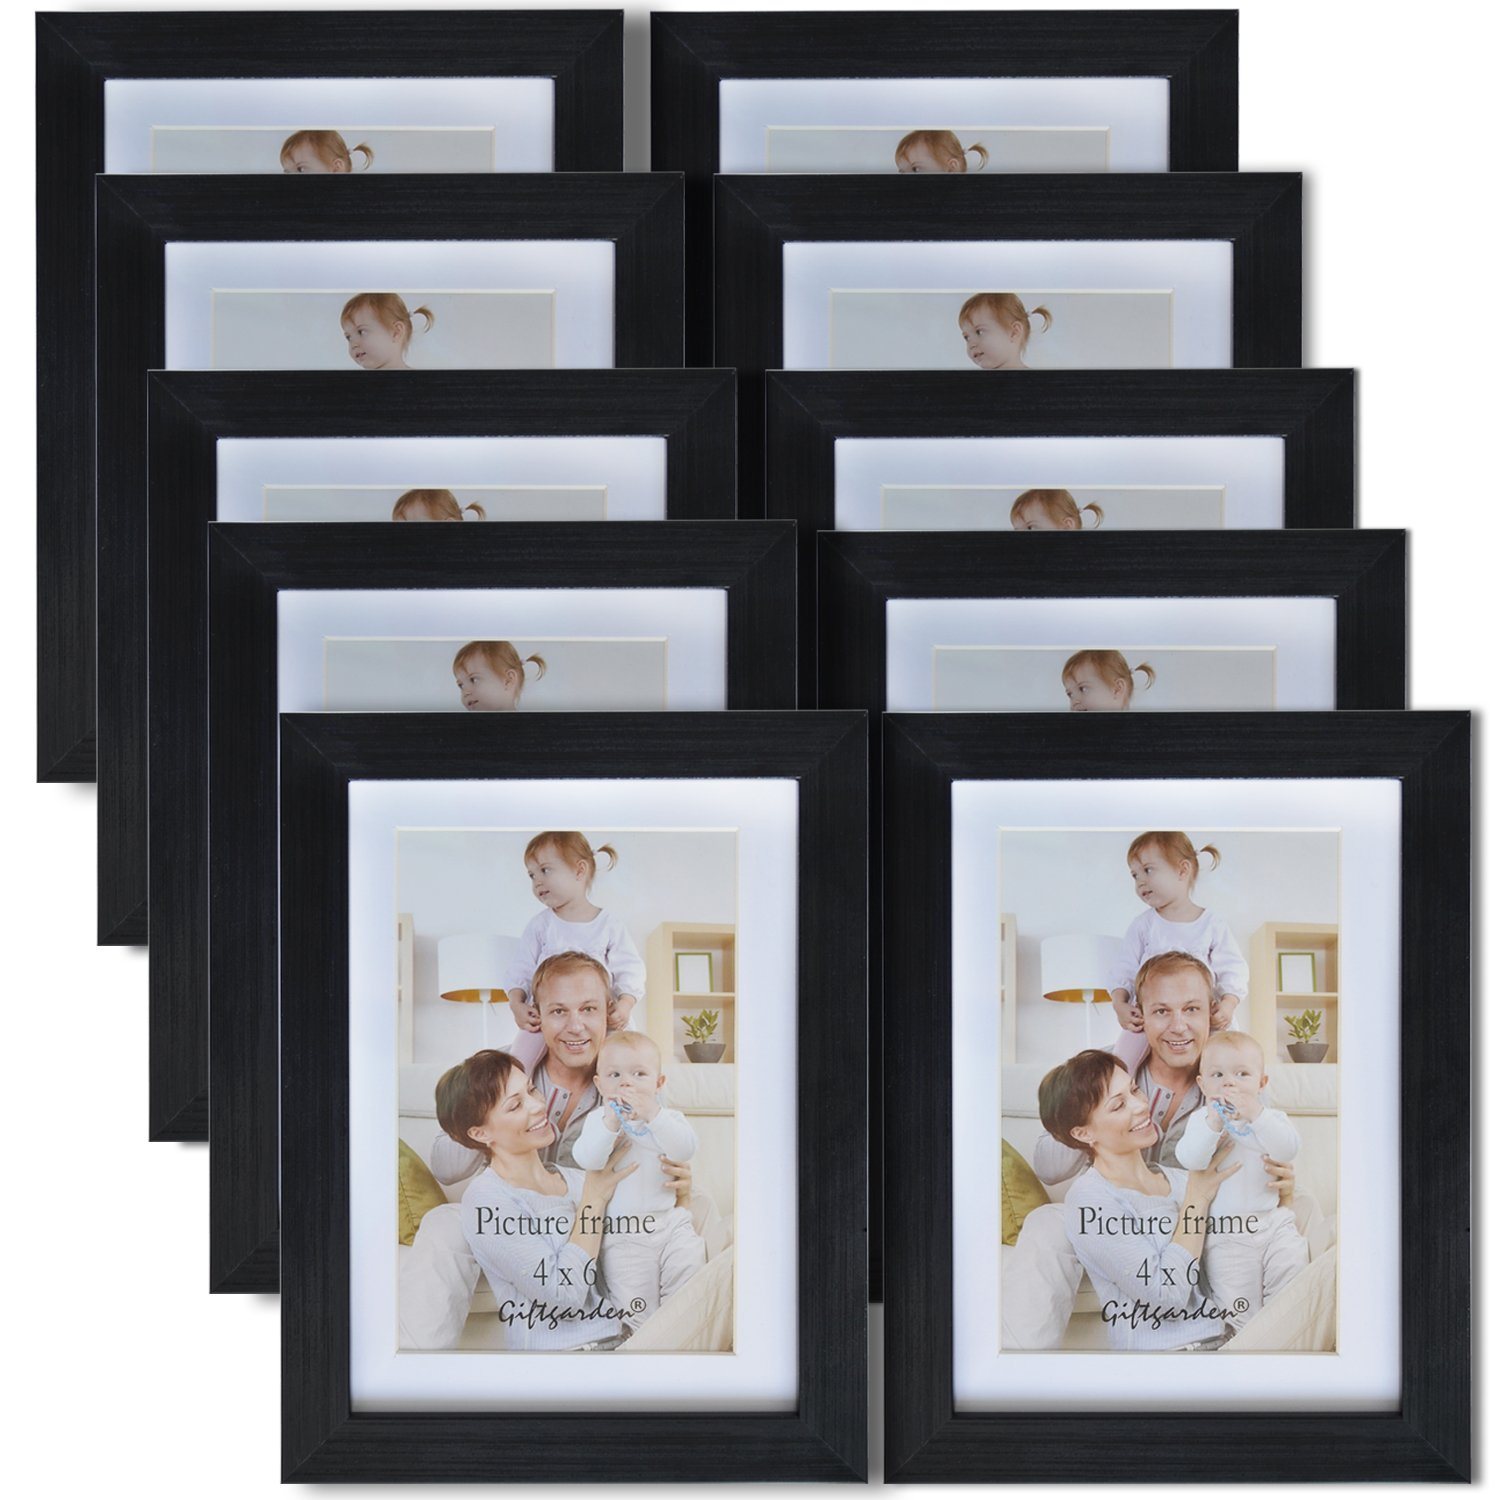 Amazon.com - Giftgarden Friends 4x6 Picture Frame for Wall Decor ...